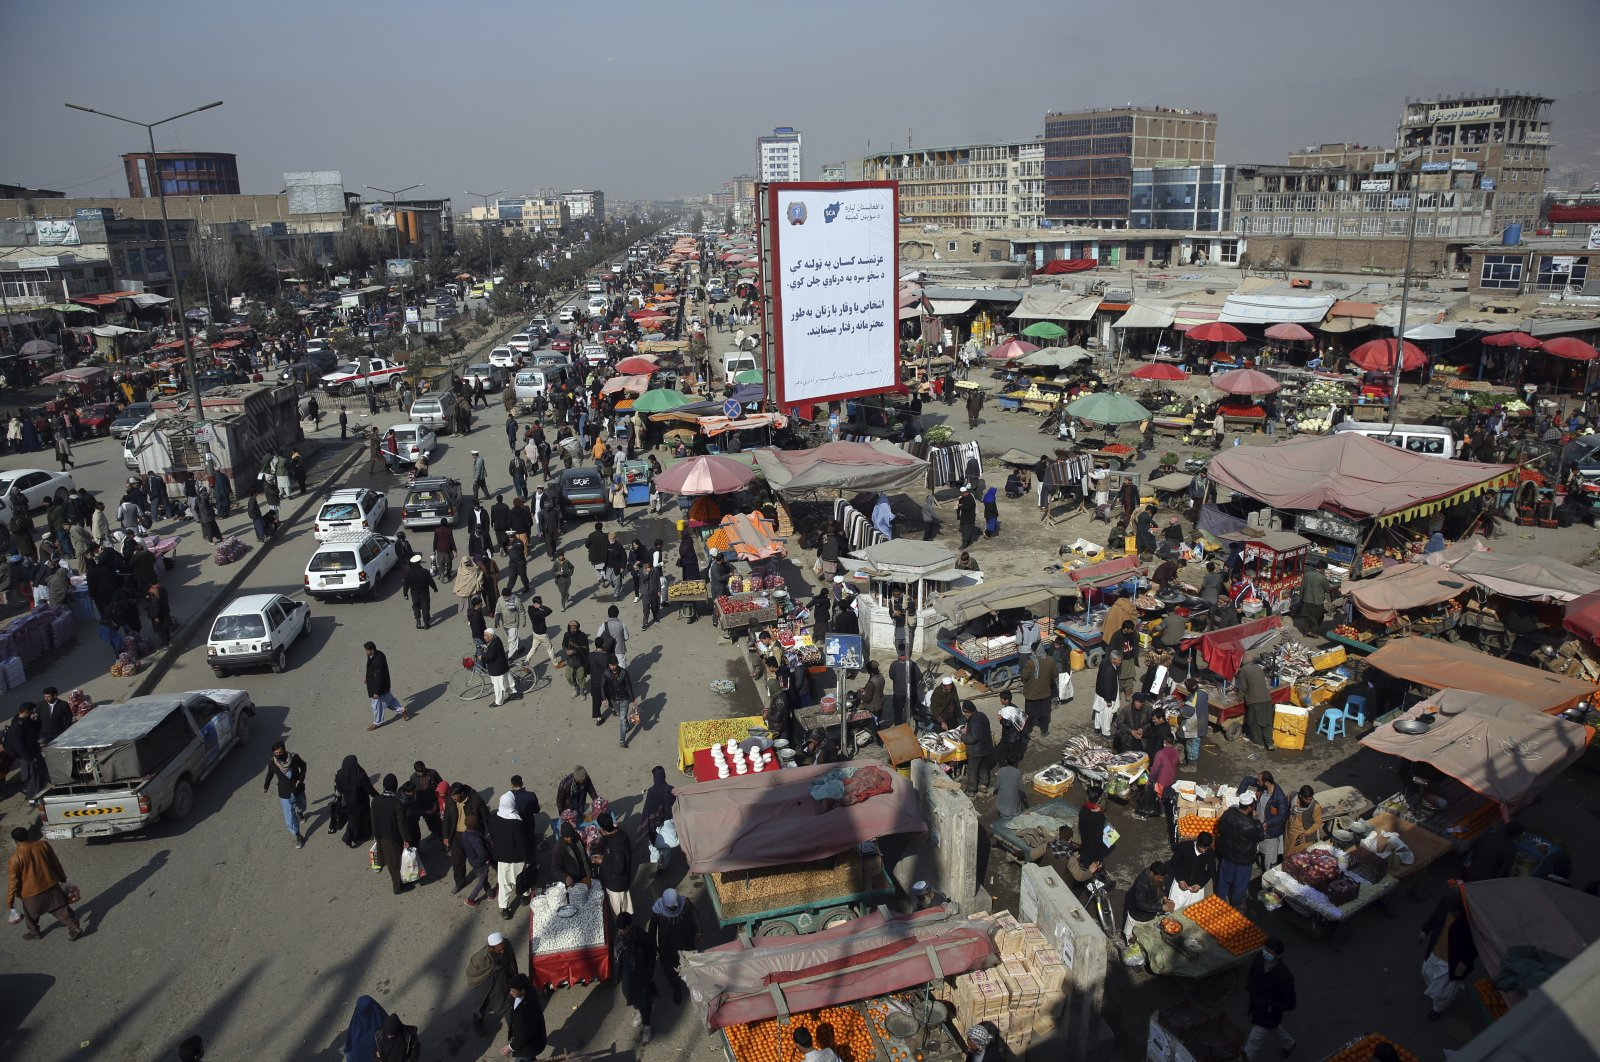 An aerial view looks down on a busy bazaar in Kabul, Afghanistan, Feb. 22, 2020. (AP Photo)